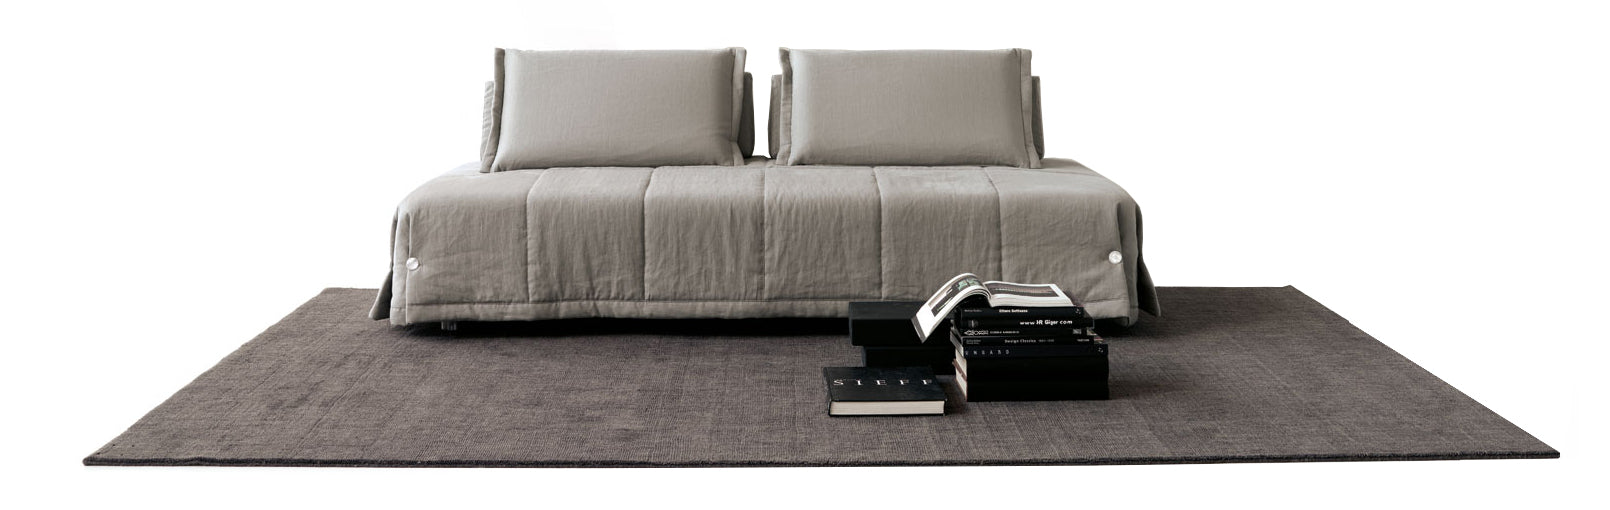 buy italian furniture online. bosal ghost sofa bed is available online exclusively at abitalia south coast buy italian furniture